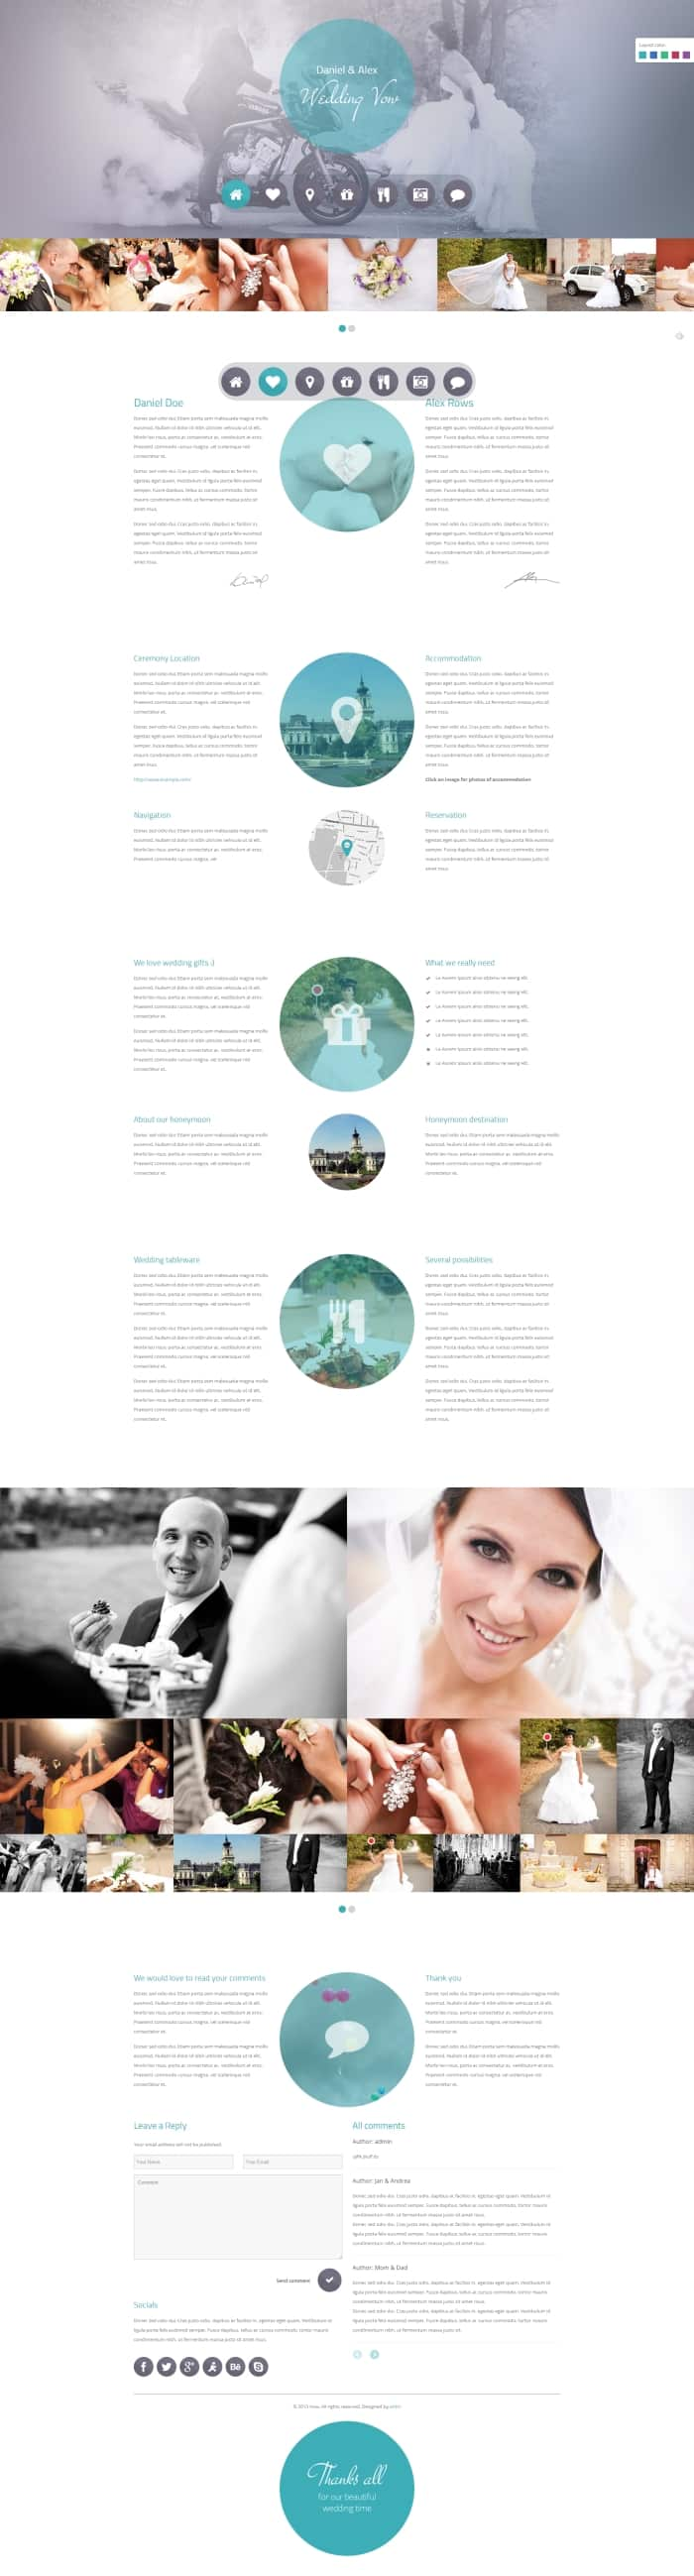 site_mariage_2